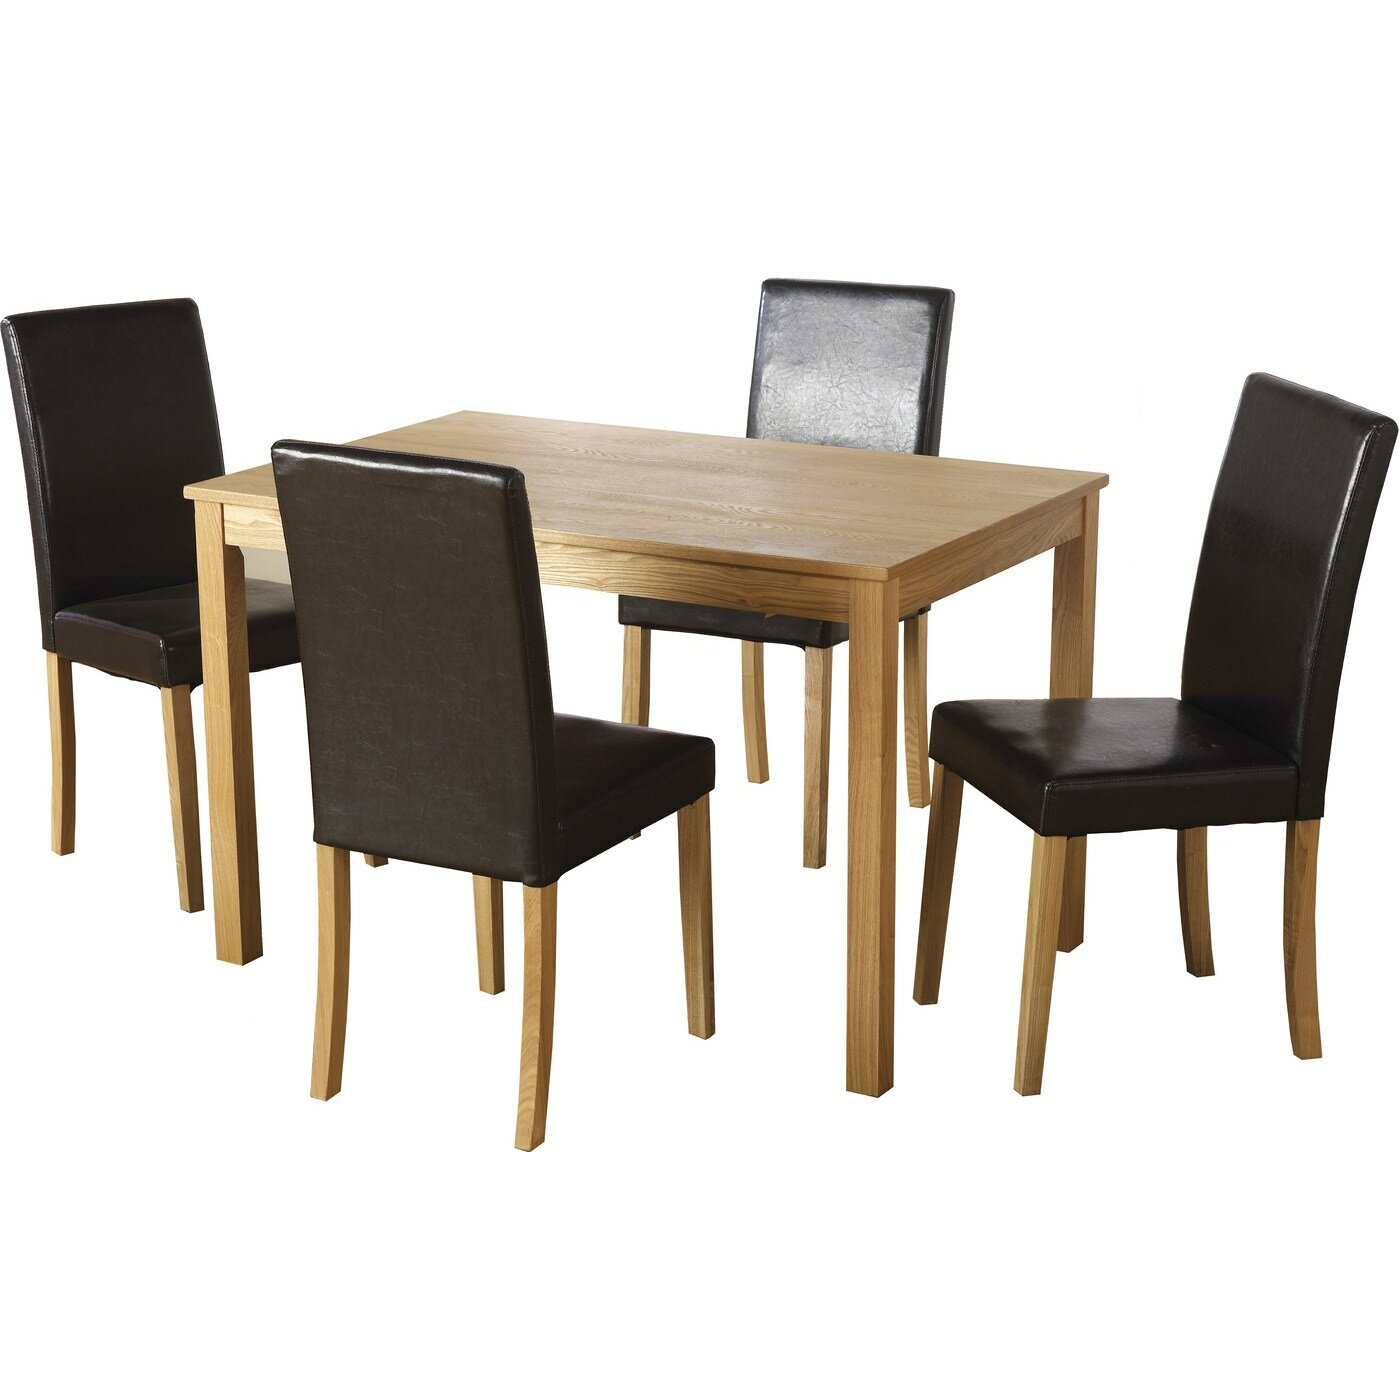 Anns dining table and 4 chairs wayfair uk for Dining room table and 4 chairs